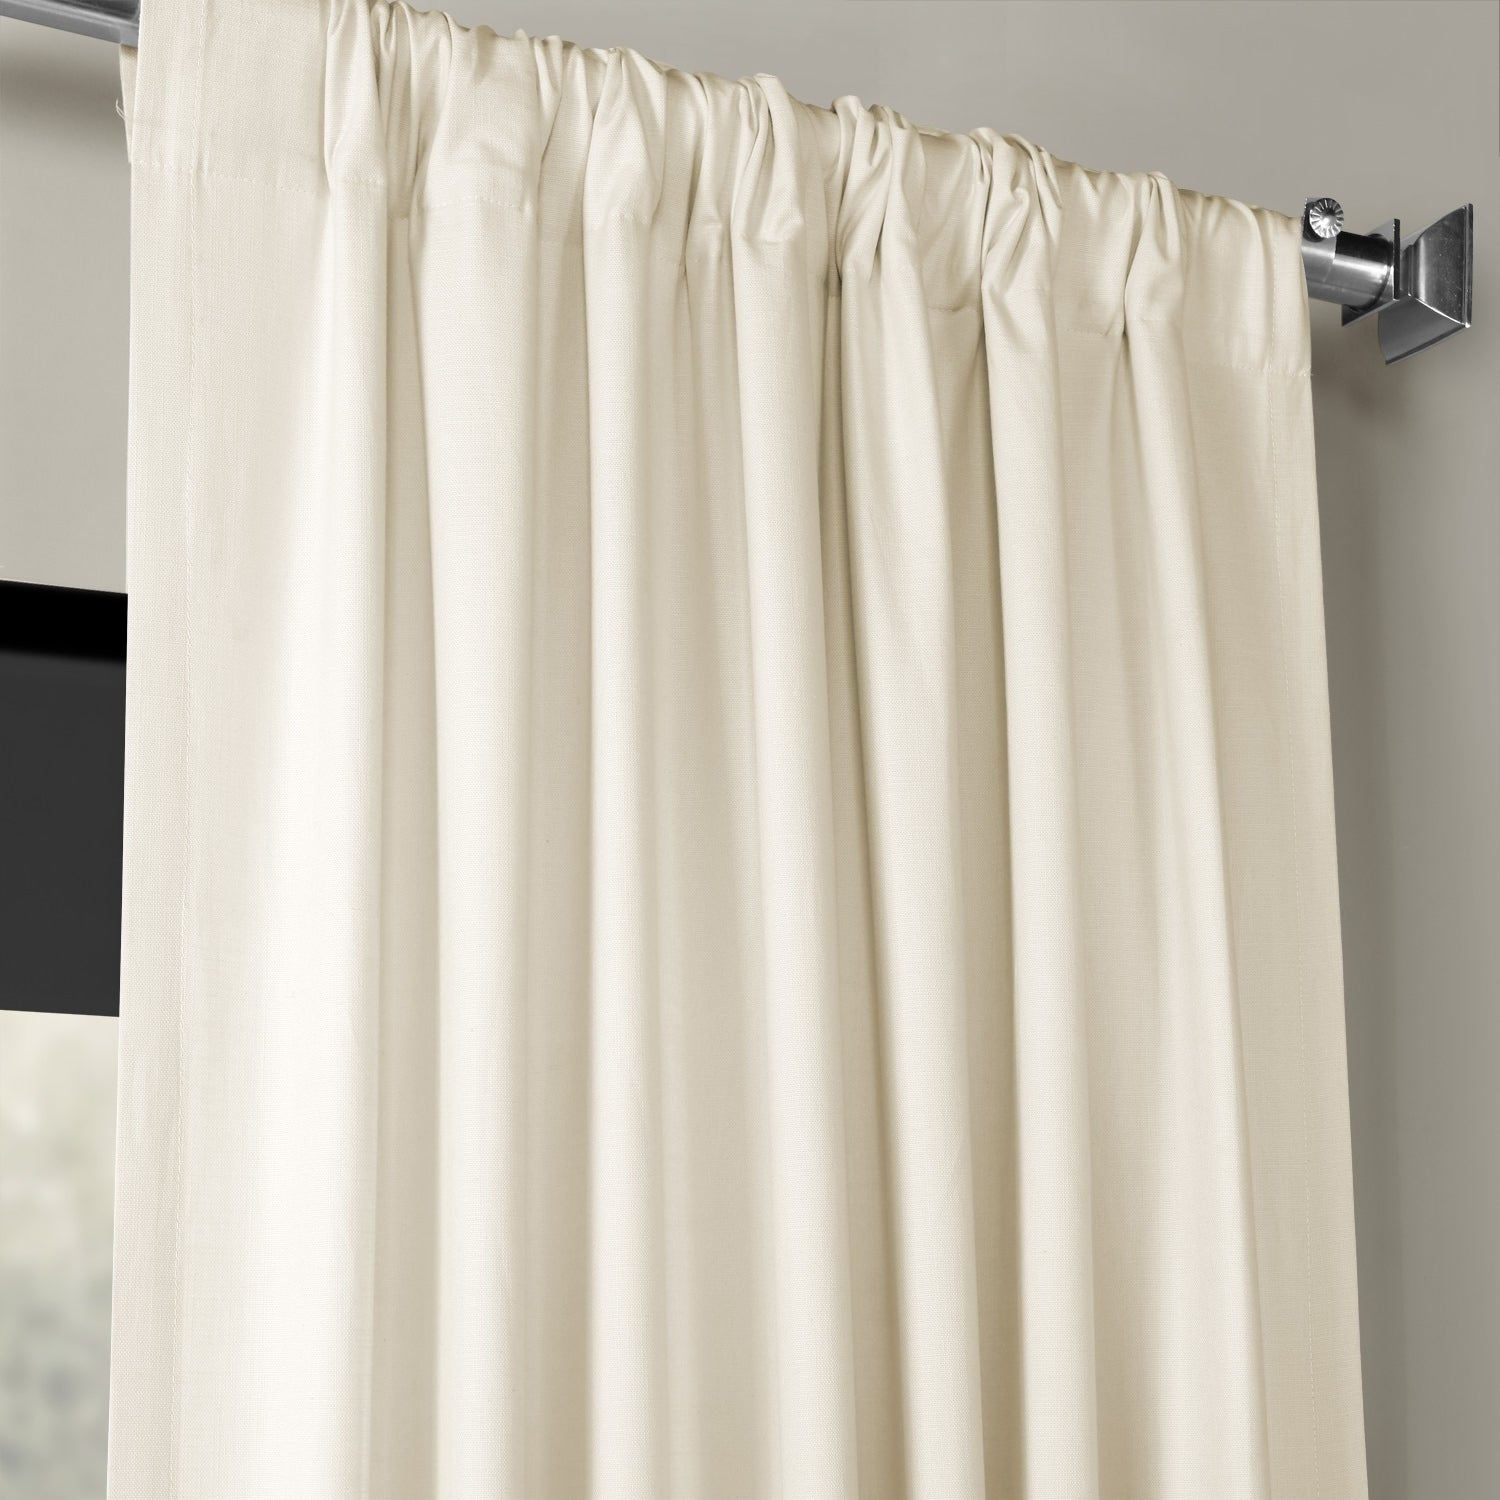 Exclusive Fabrics Solid Country Cotton Linen Weave Curtain Panel Intended For Solid Country Cotton Linen Weave Curtain Panels (View 5 of 30)